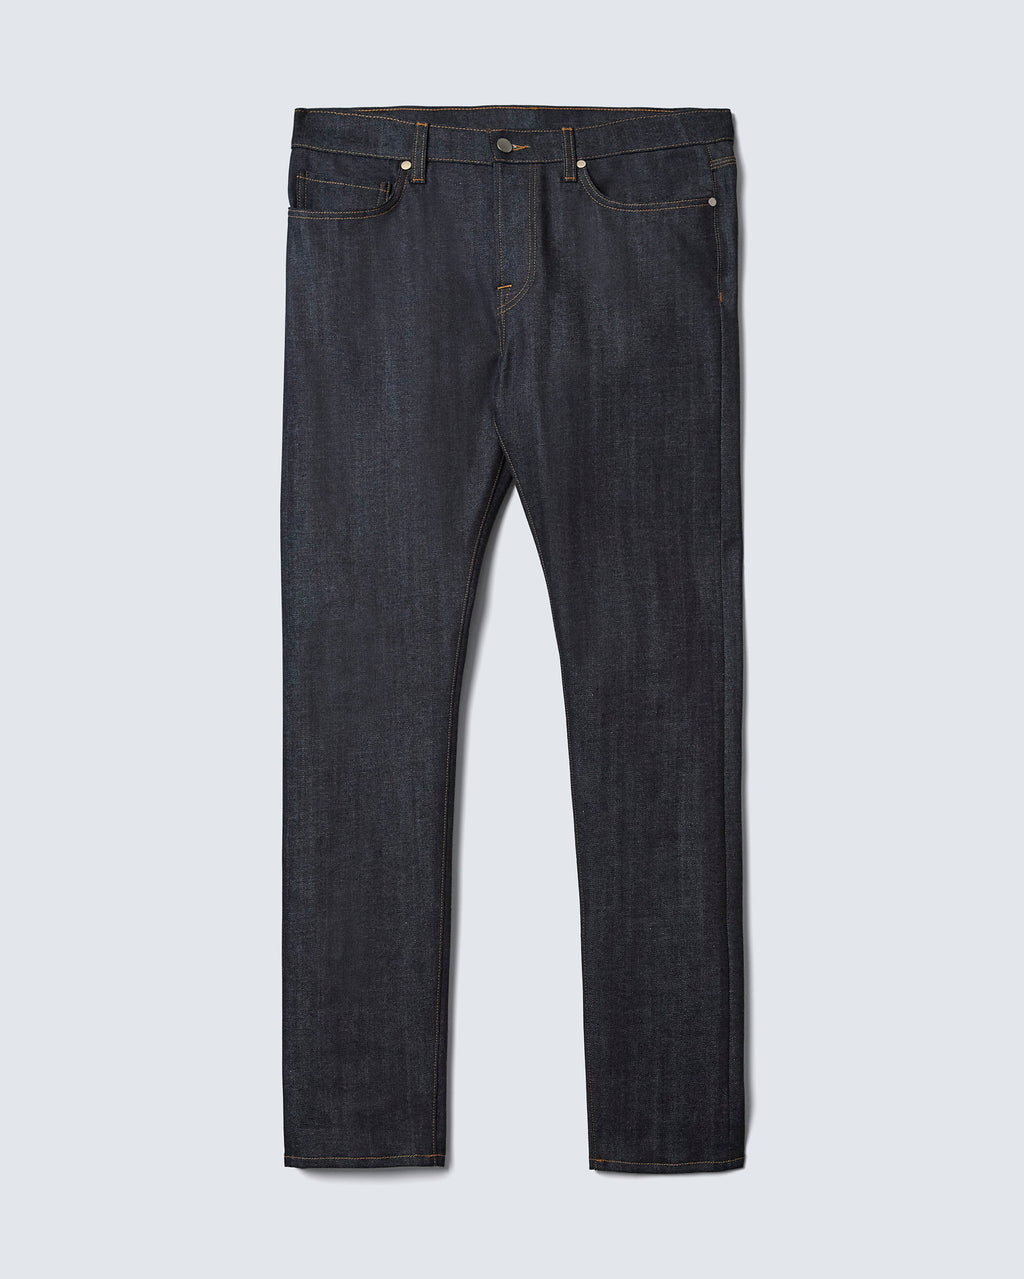 The Modern Skinny in Indigo Stretch Selvedge